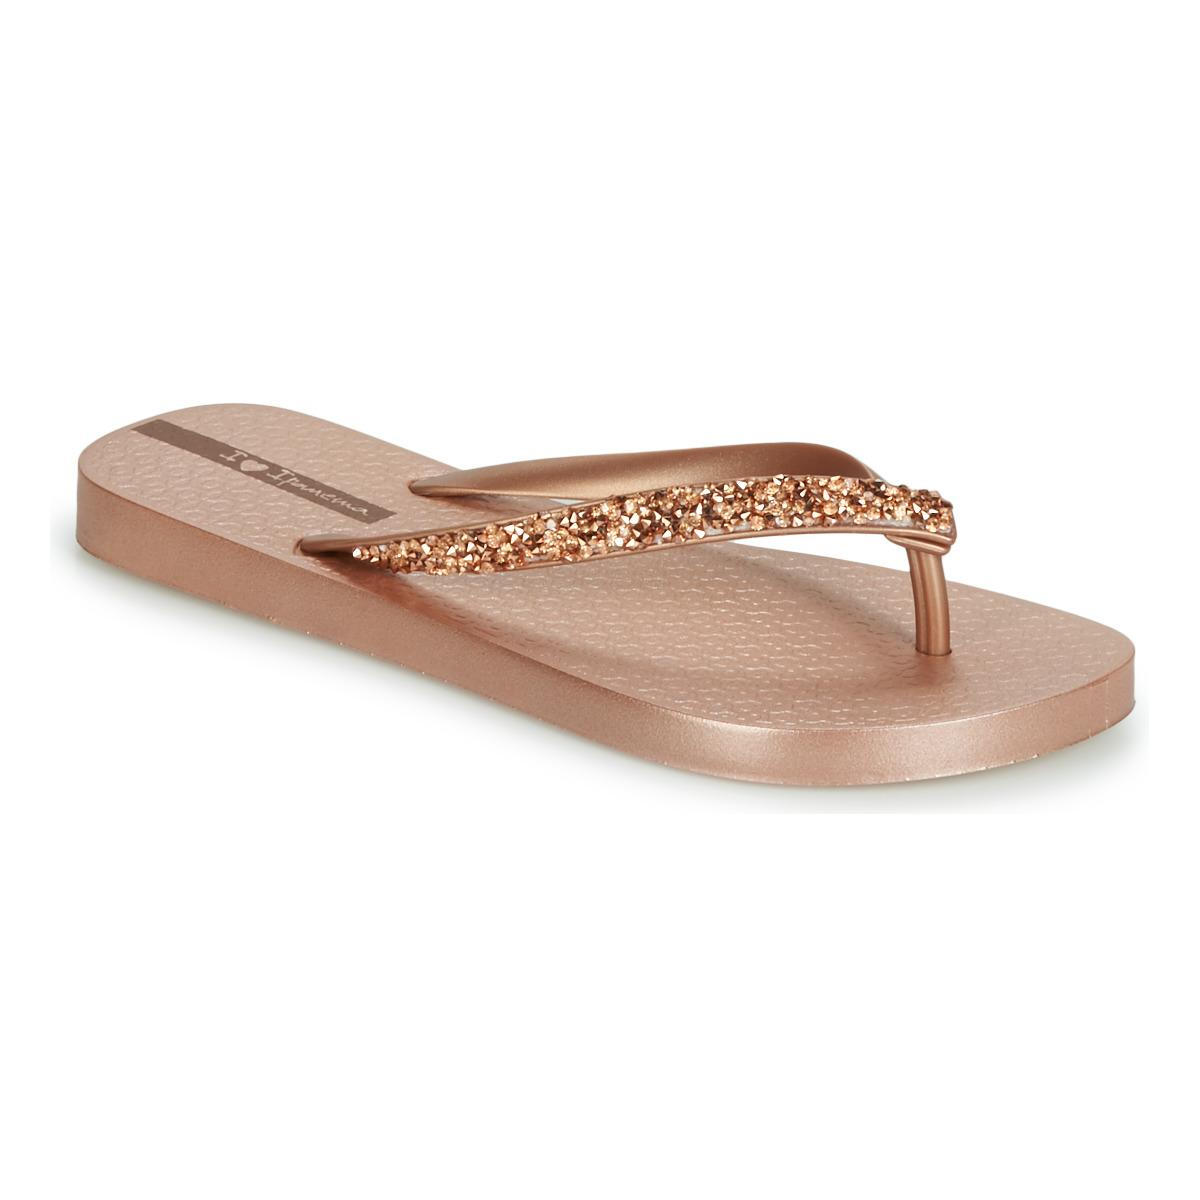 ee7a9919a Ipanema Glam Special Flip Flops   Sandals (shoes) in Pink - Lyst